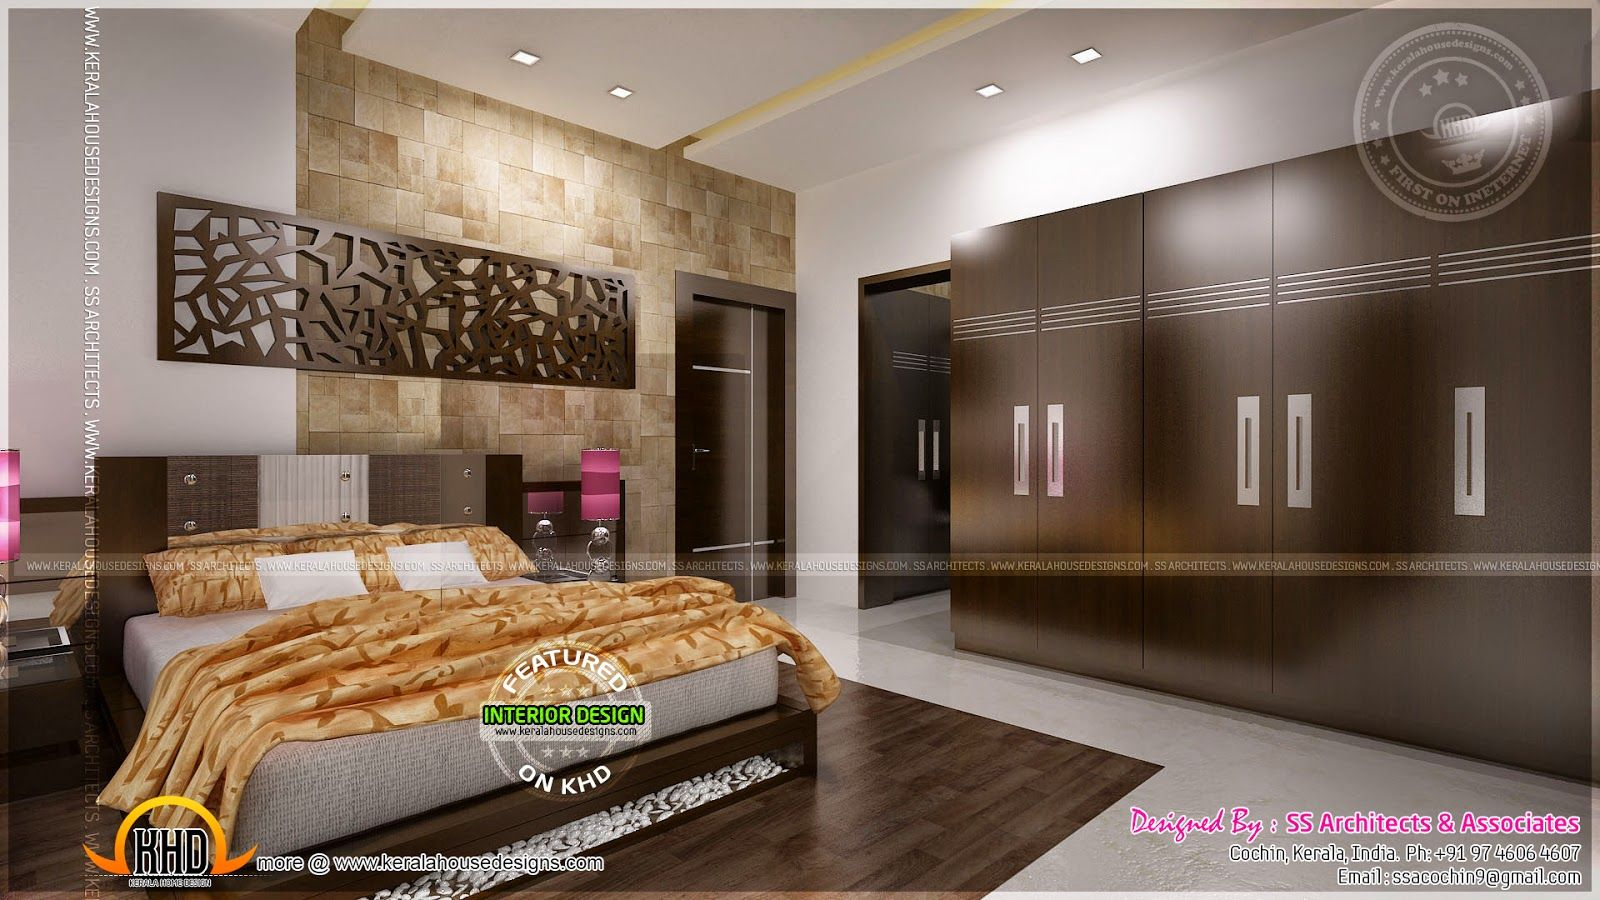 Master Bedroom Interior Design indian bedroom interiors - google search | bedroom | pinterest